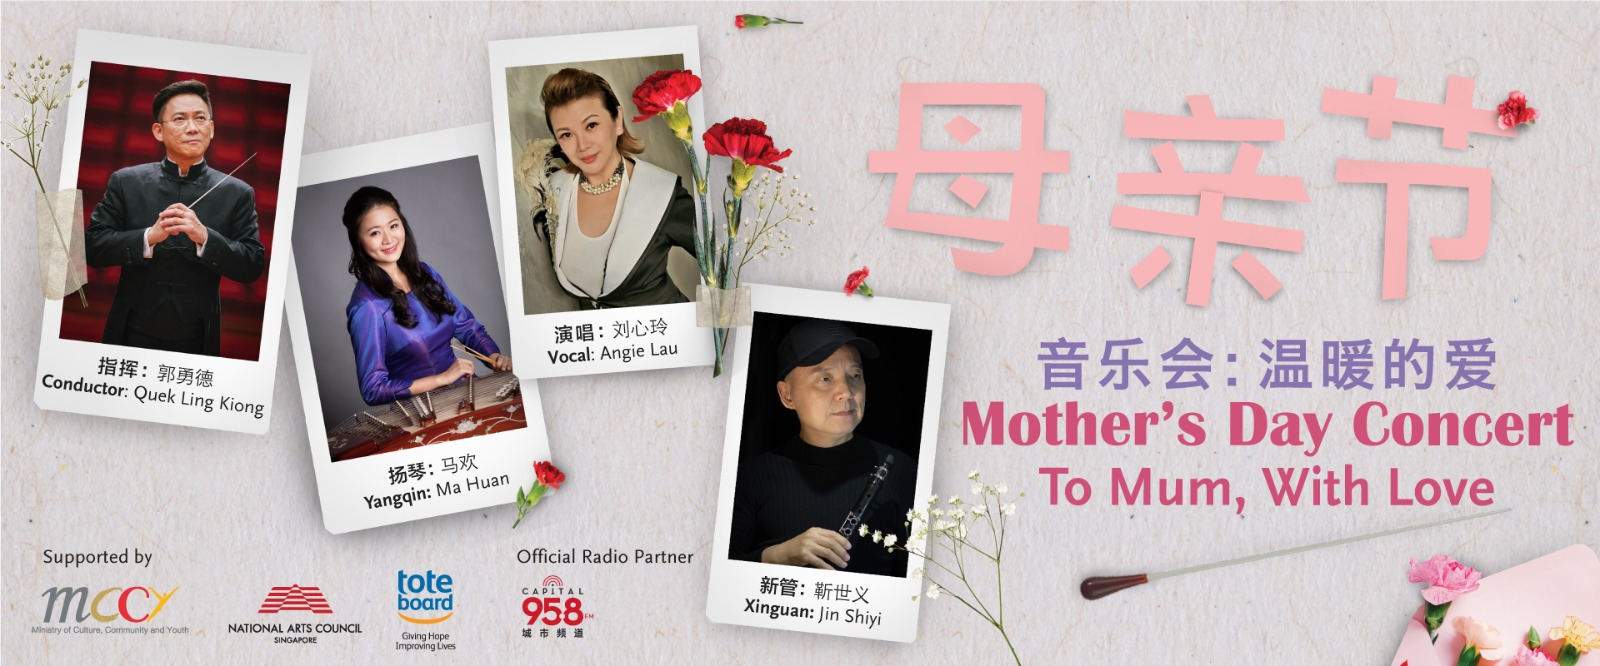 SCO_Mothers-Day_1920x800 All Concerts and Events